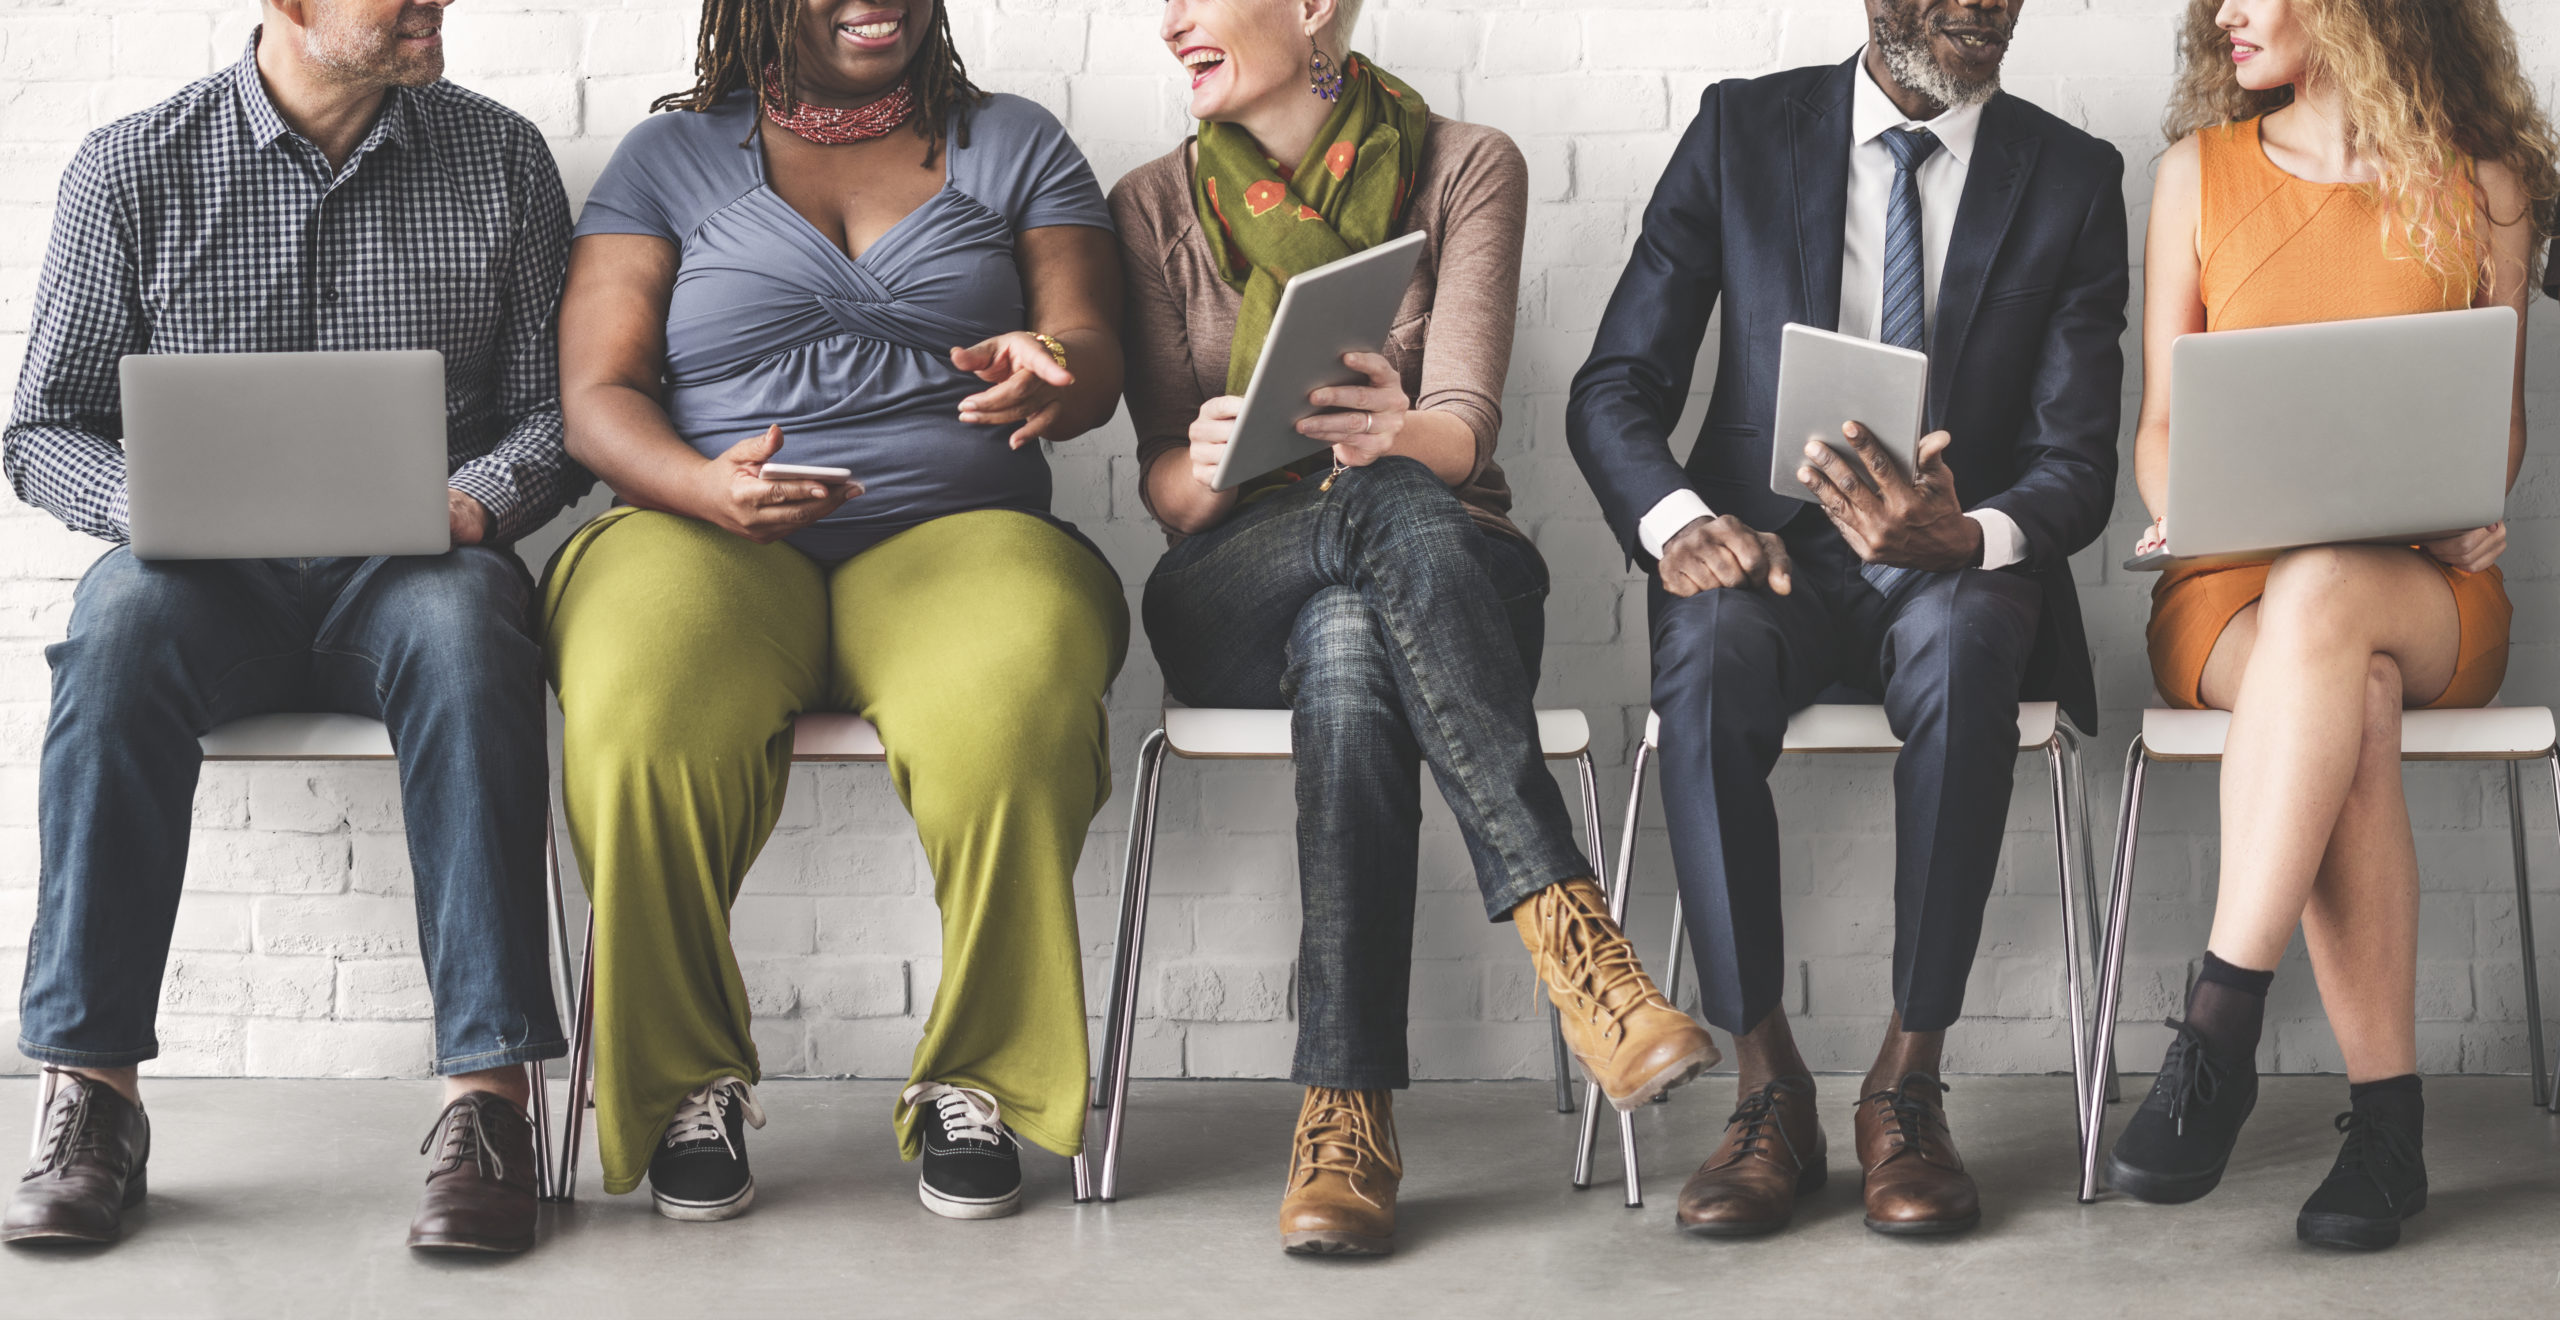 A group of diverse people using digital devices and talking together